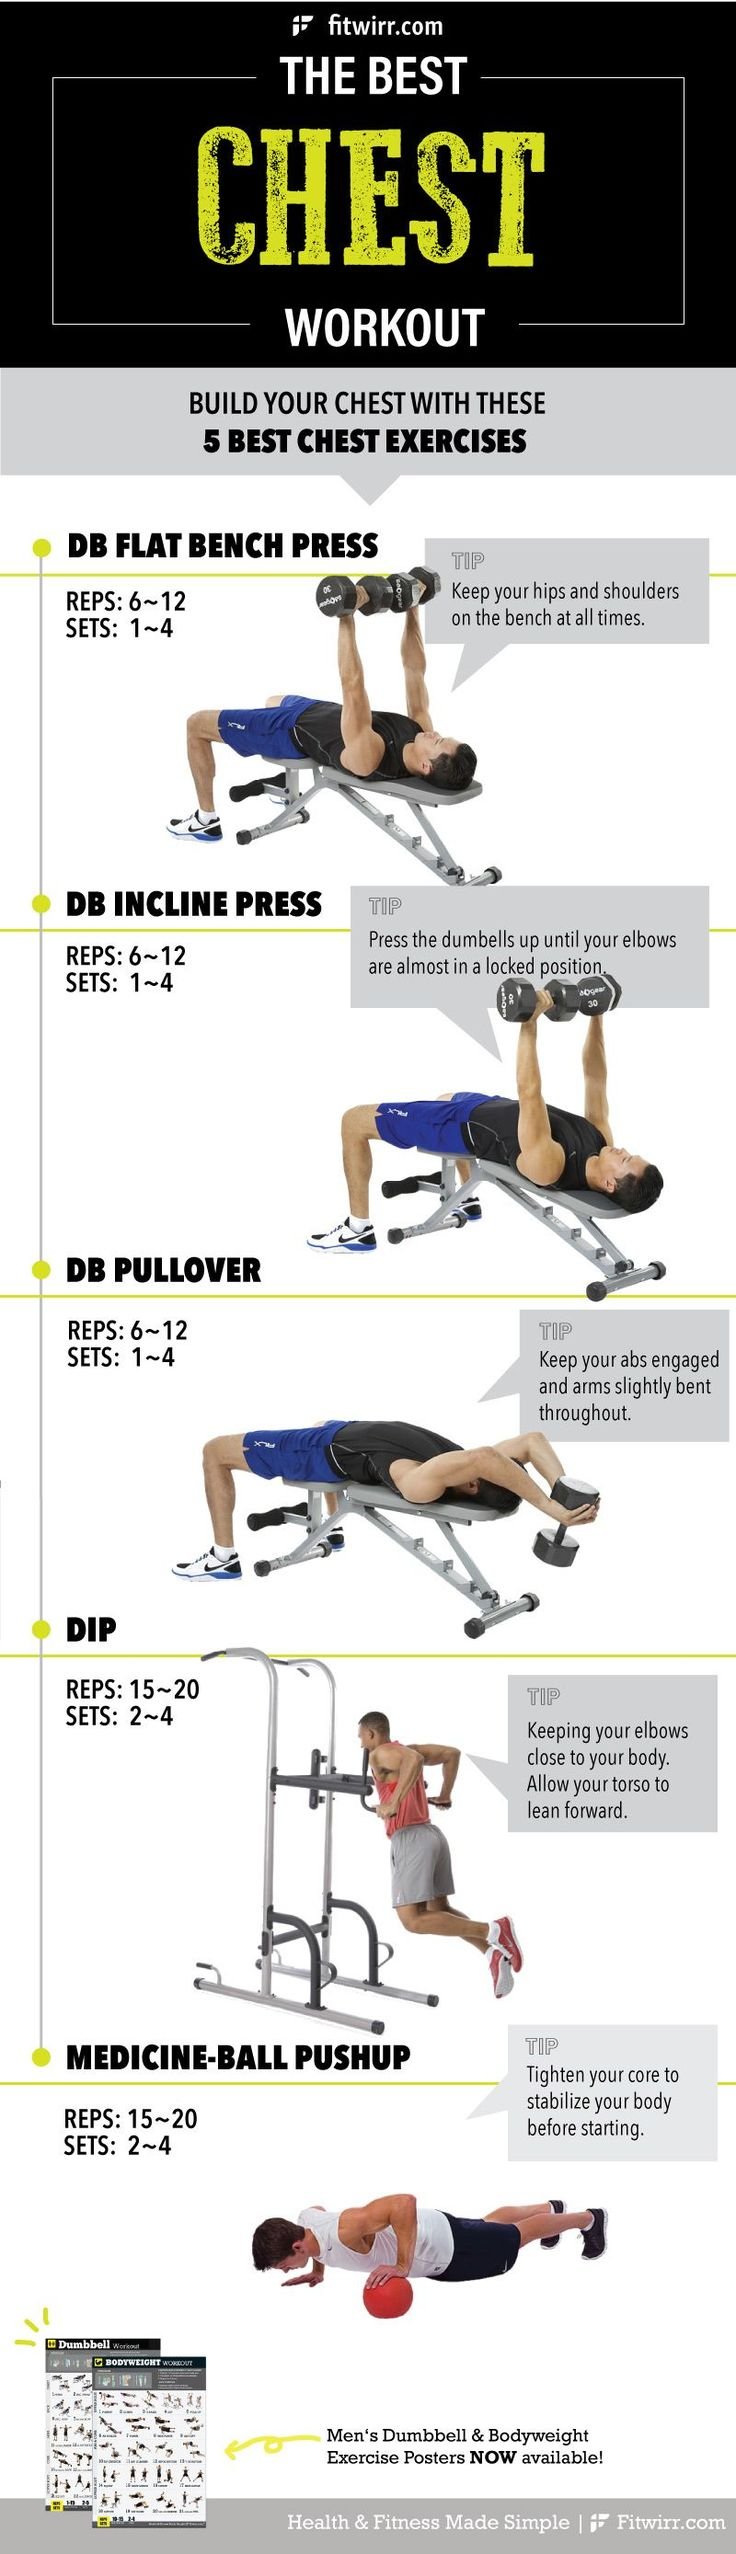 Chest workouts for men. #chestworkouts #workouts